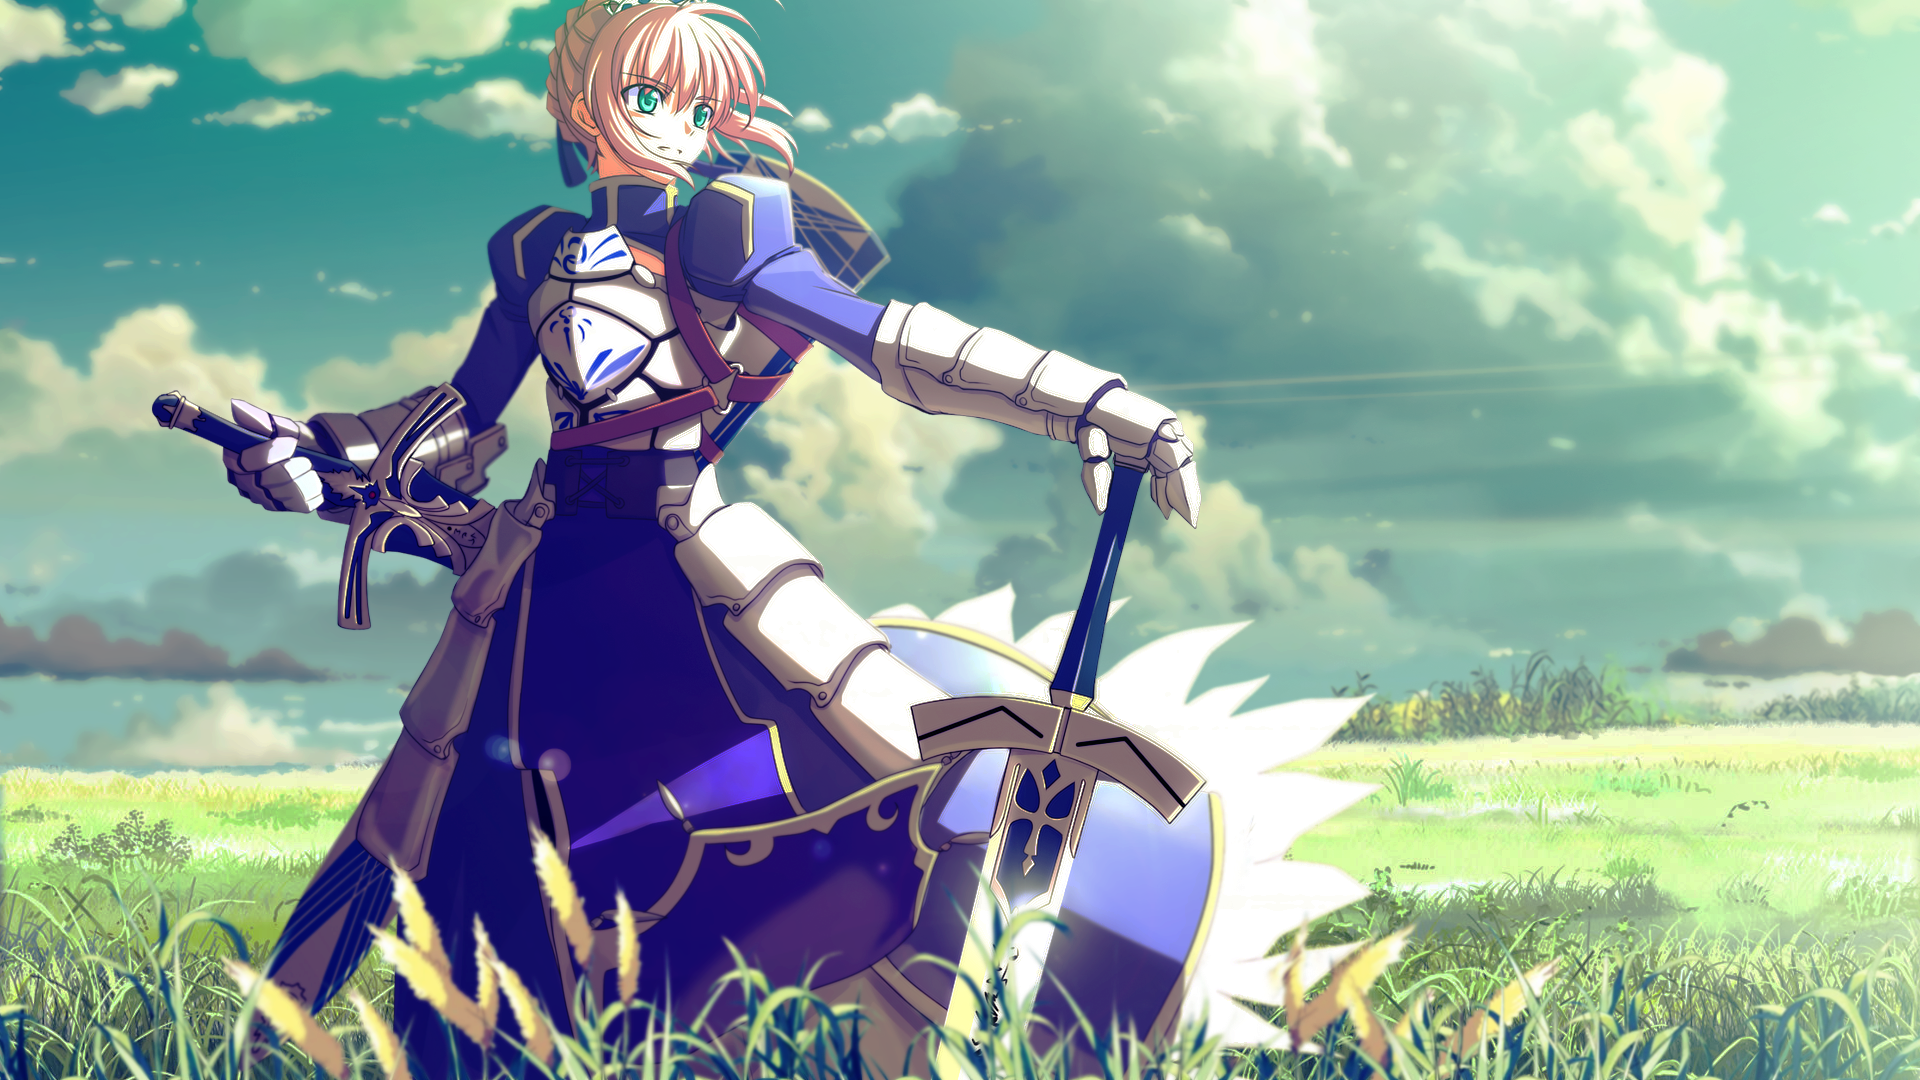 Free Download Saber Fate Stay Night Desktop Wallpaper Download